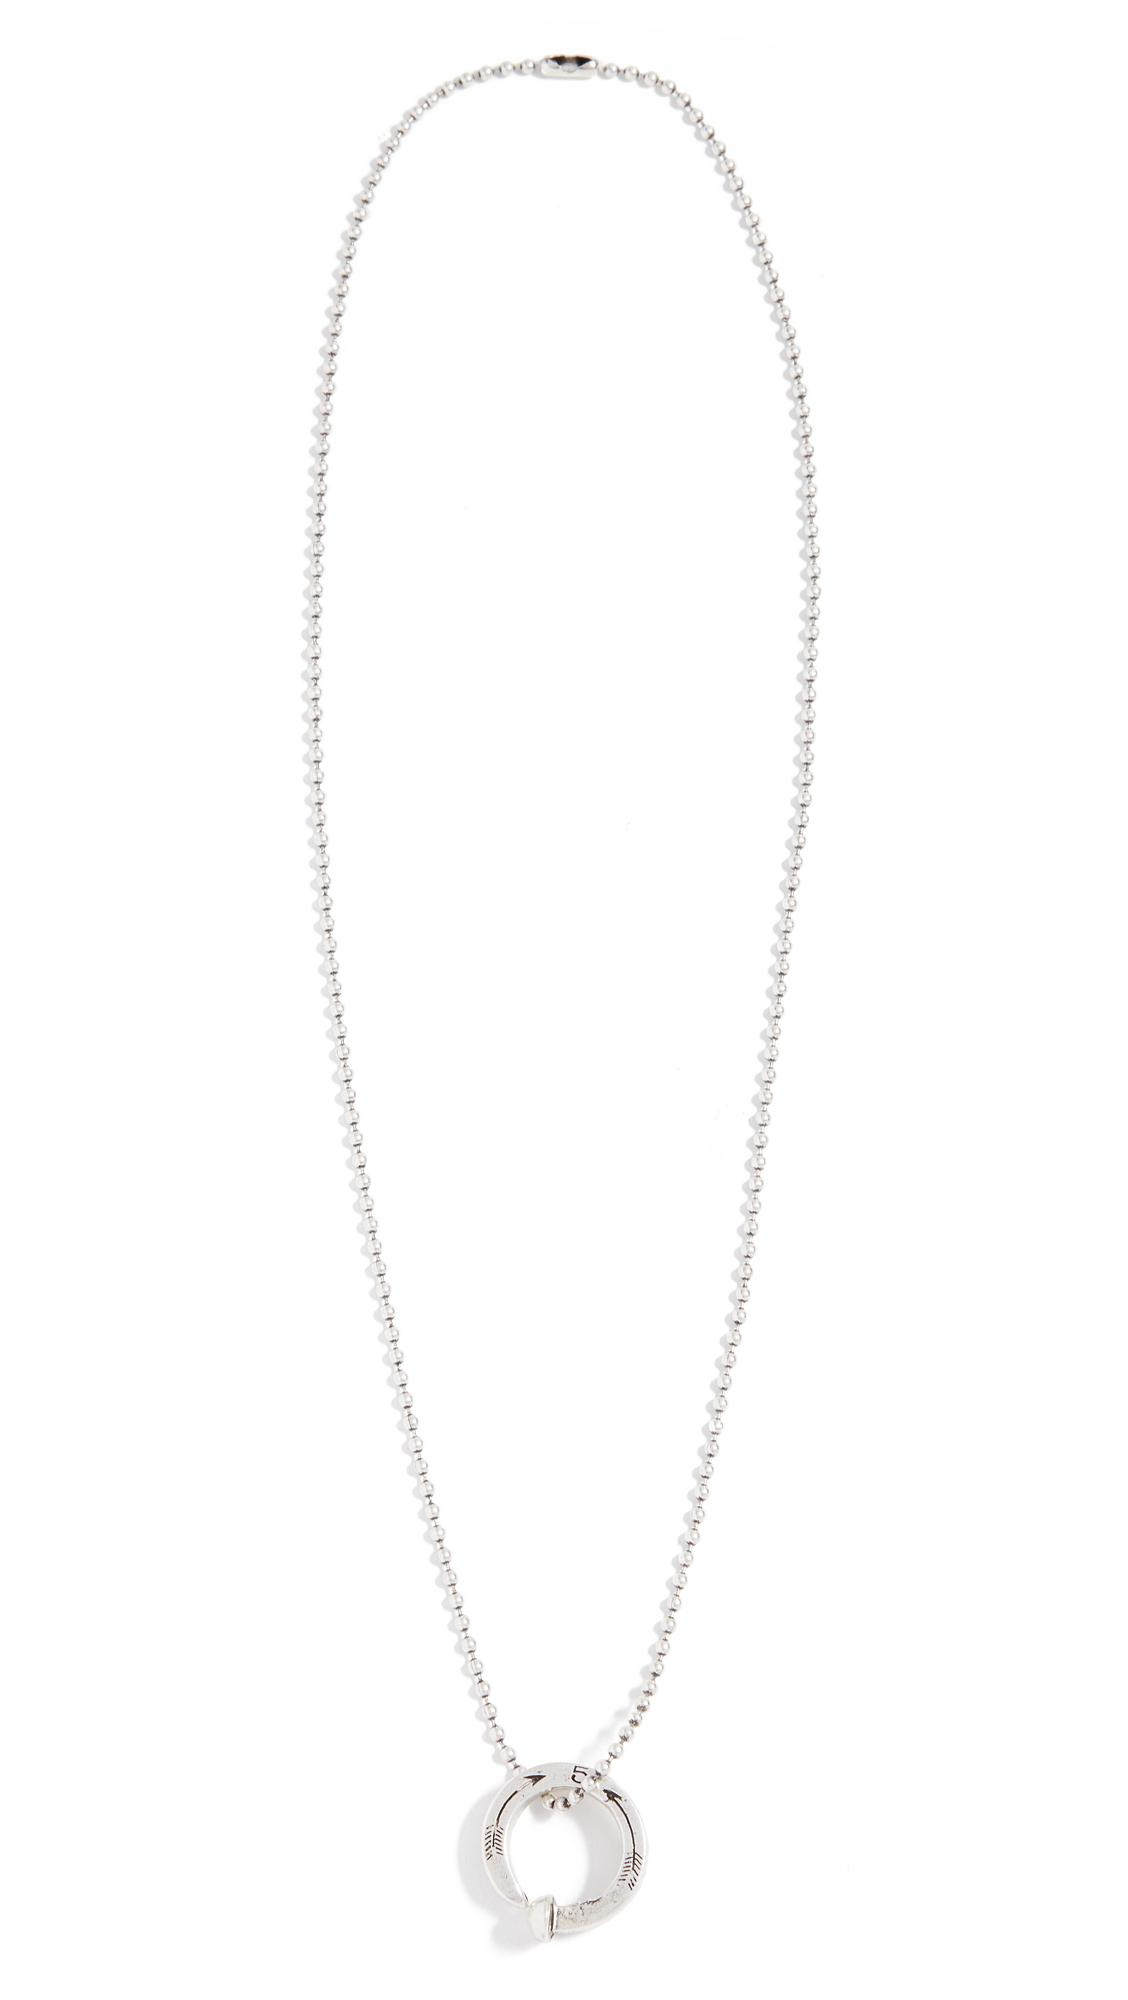 Giles & Brother Railroad Spike Ring Ball Chain Necklace - Silver Oxide vqyX4cl6Tv